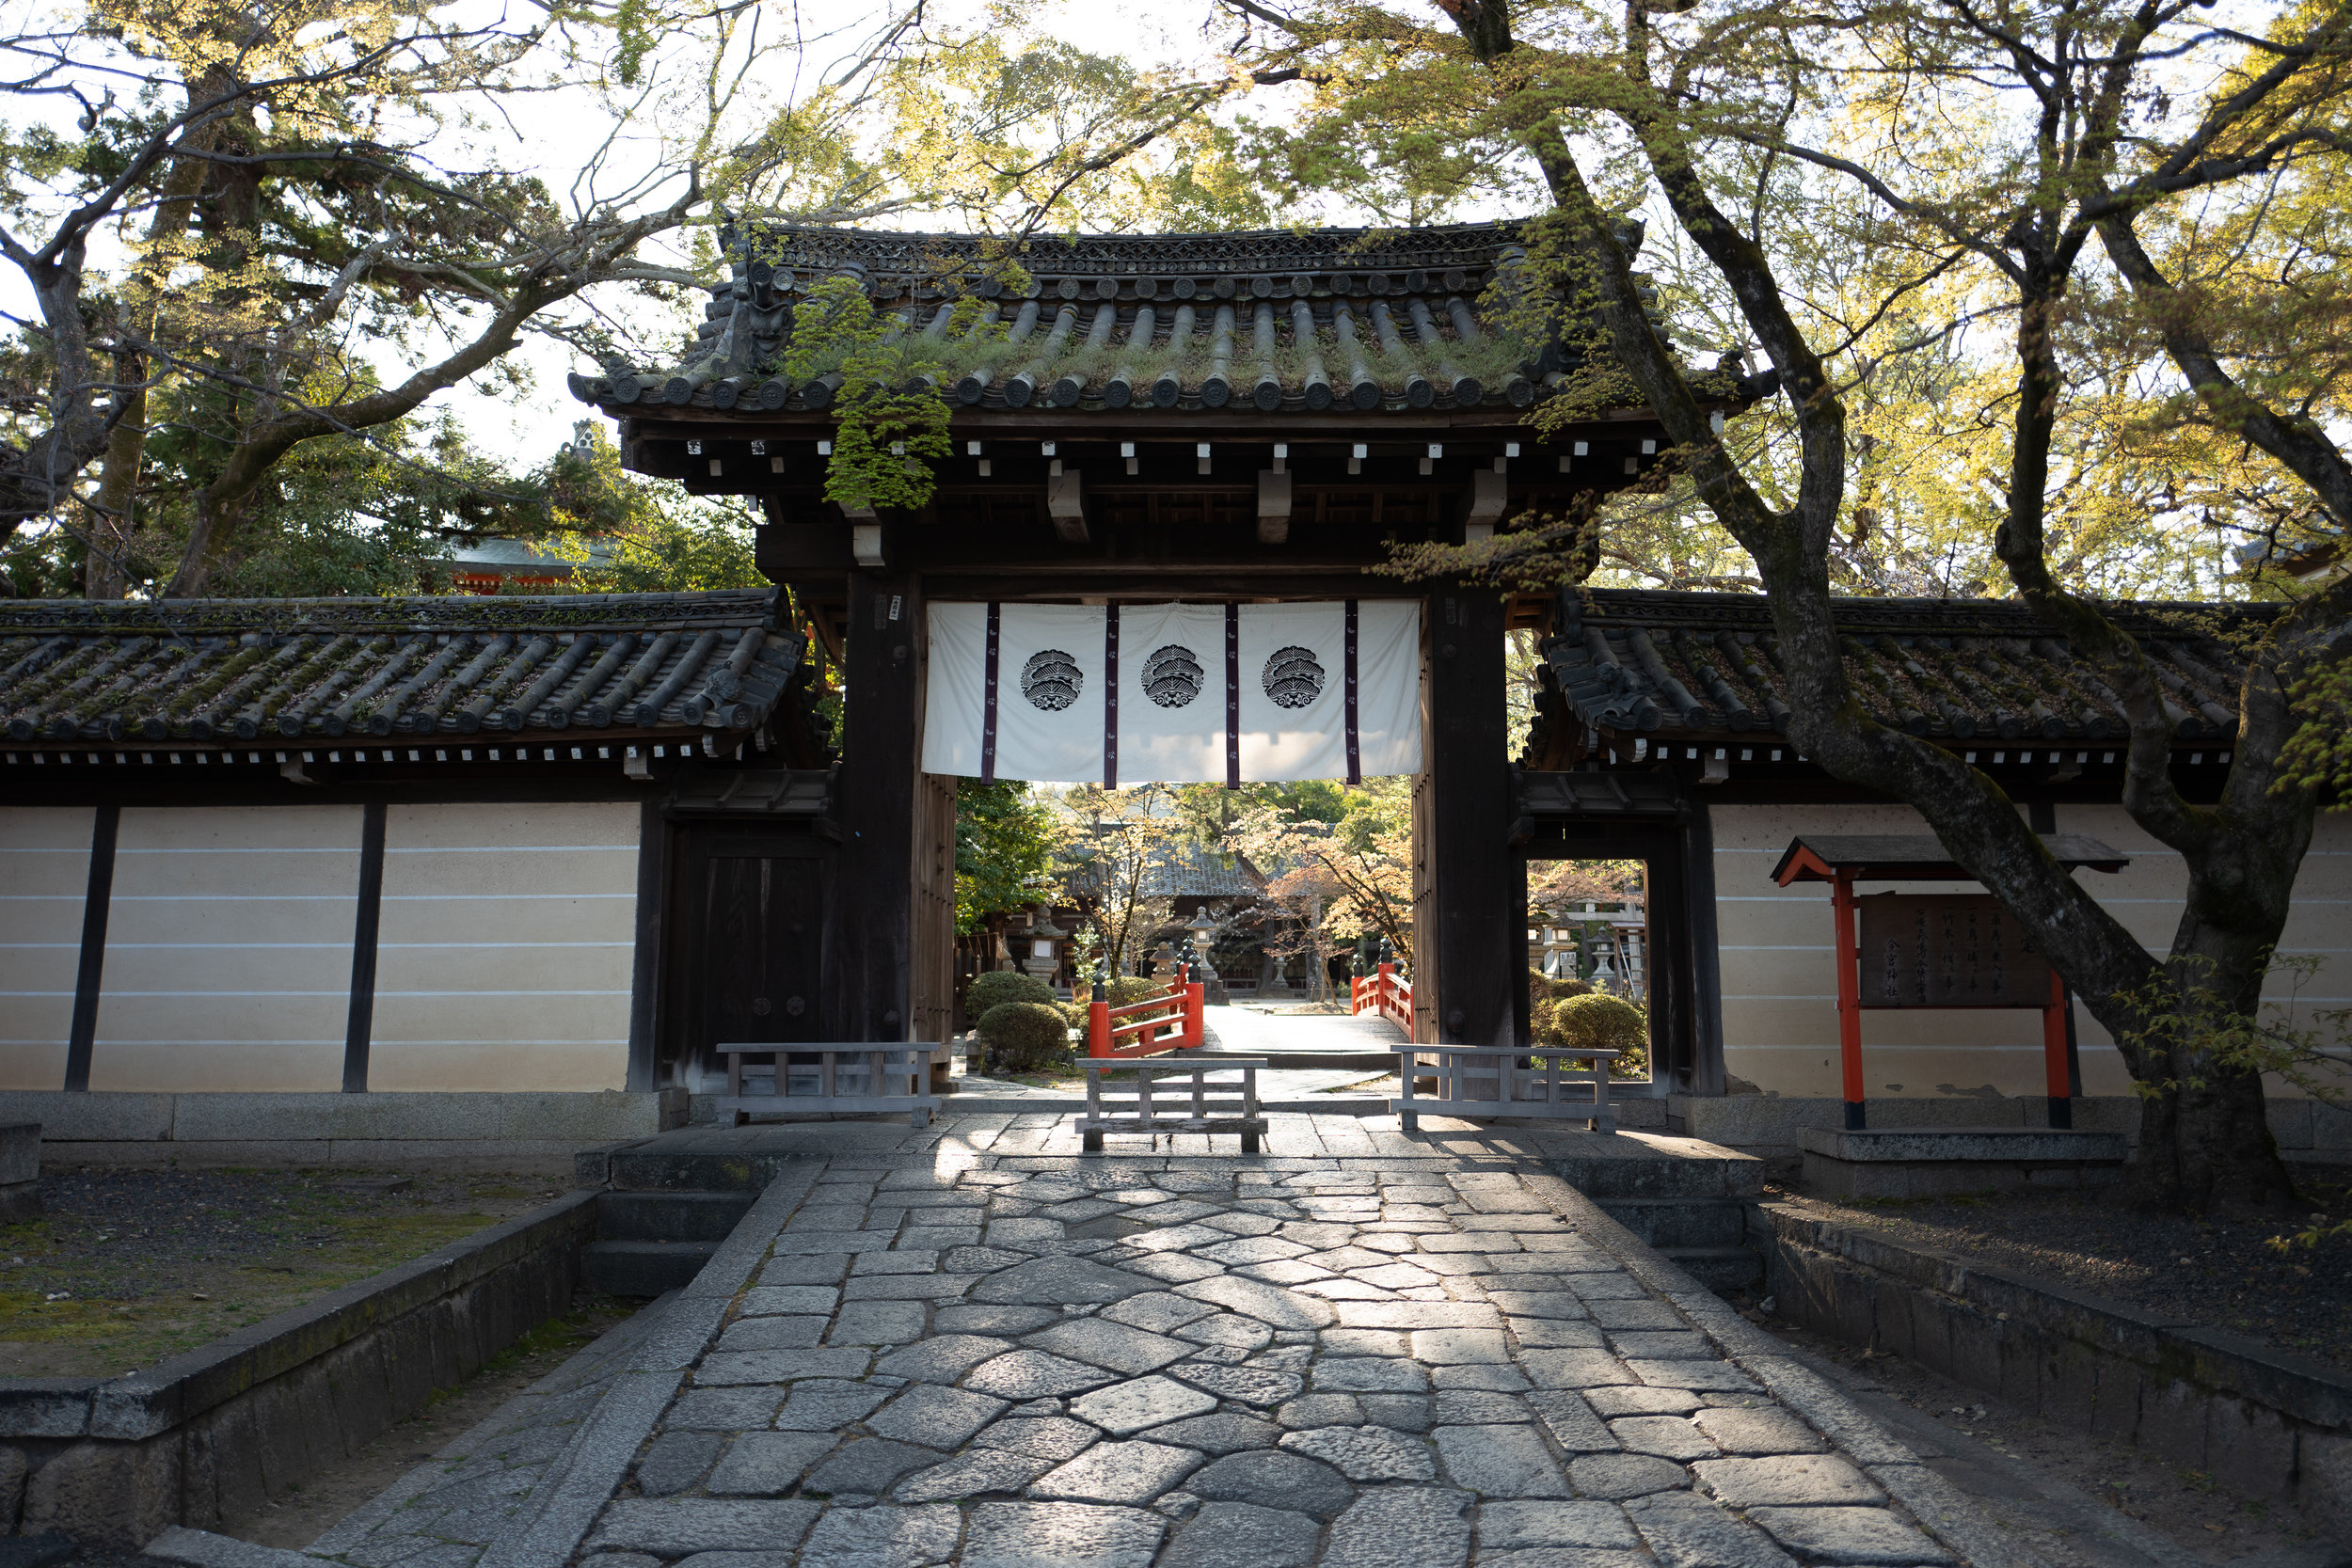 The eastern gate of the Imamiya Shrine, as seen from the direction of the two mochi shops.